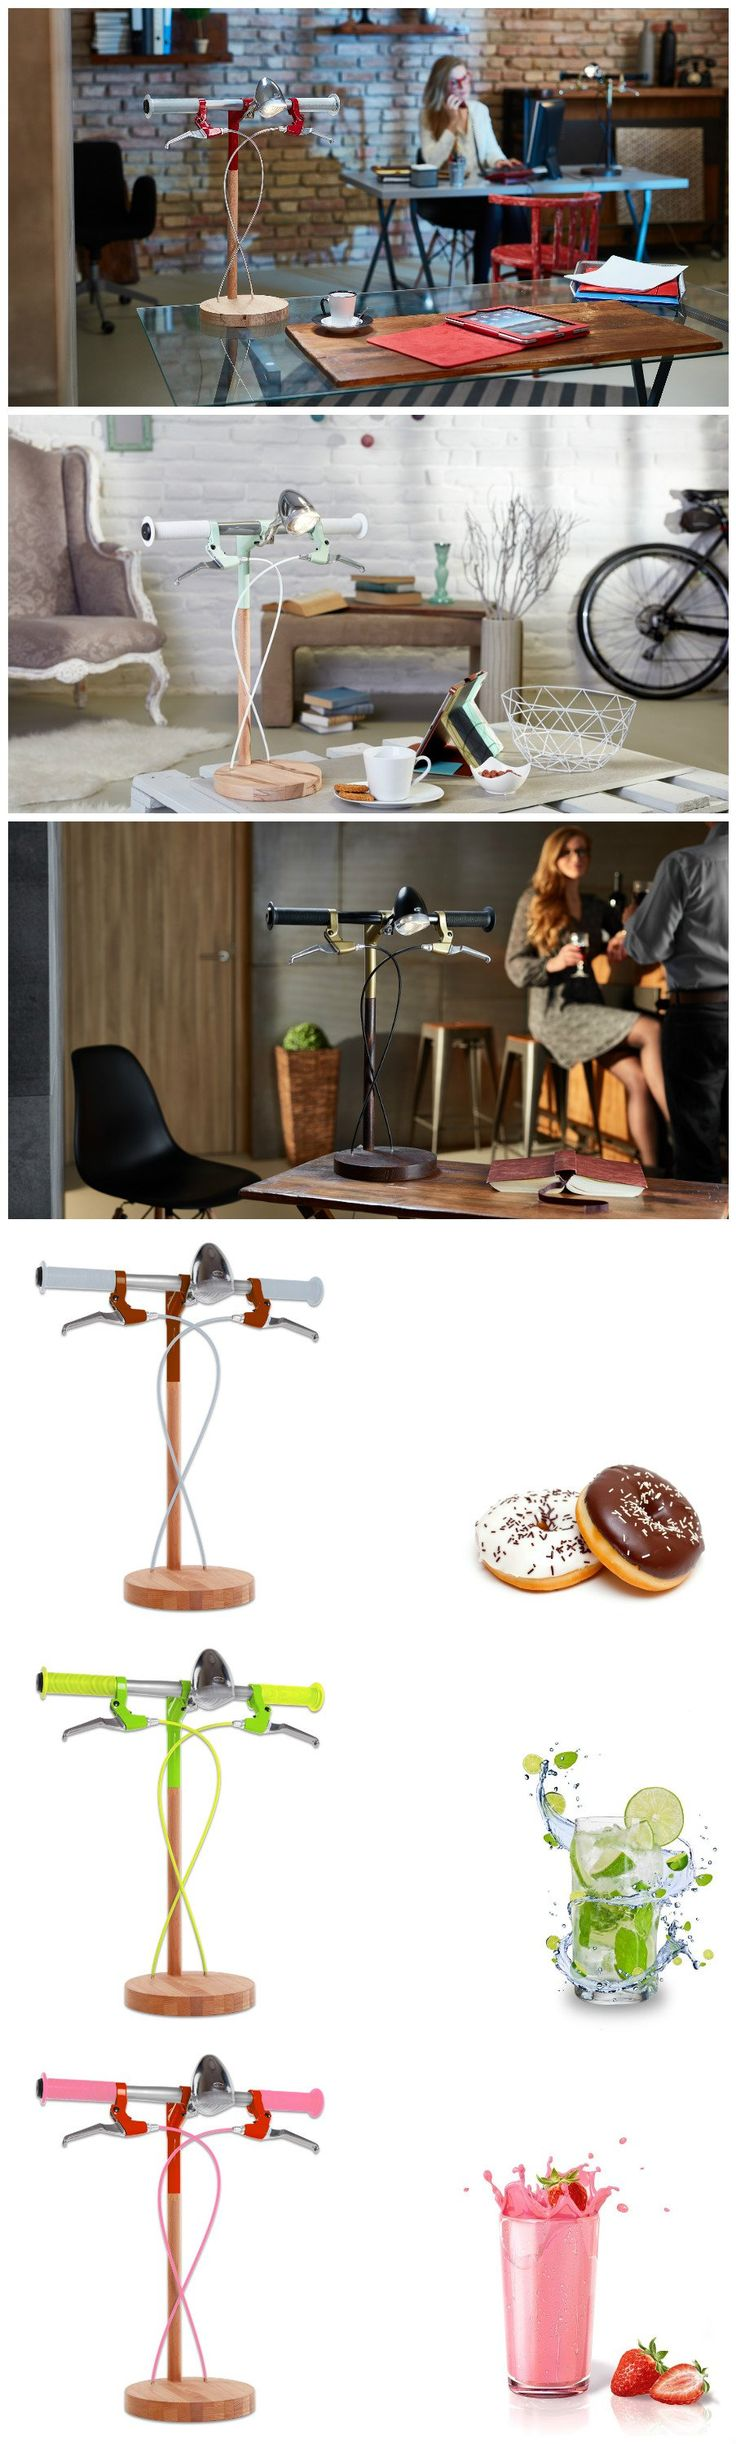 #Bike, #Biking, #Cycle, #Cycling, #DeskLamp, #Lamps, #Lighting Industrial Kid's bicycle-inspired, contemporary design lamps offer the customers the freedom of choice by participating in the creative process. Desk lamps made from bicycle parts combined with the soft touch of wood create a special atmosphere at h